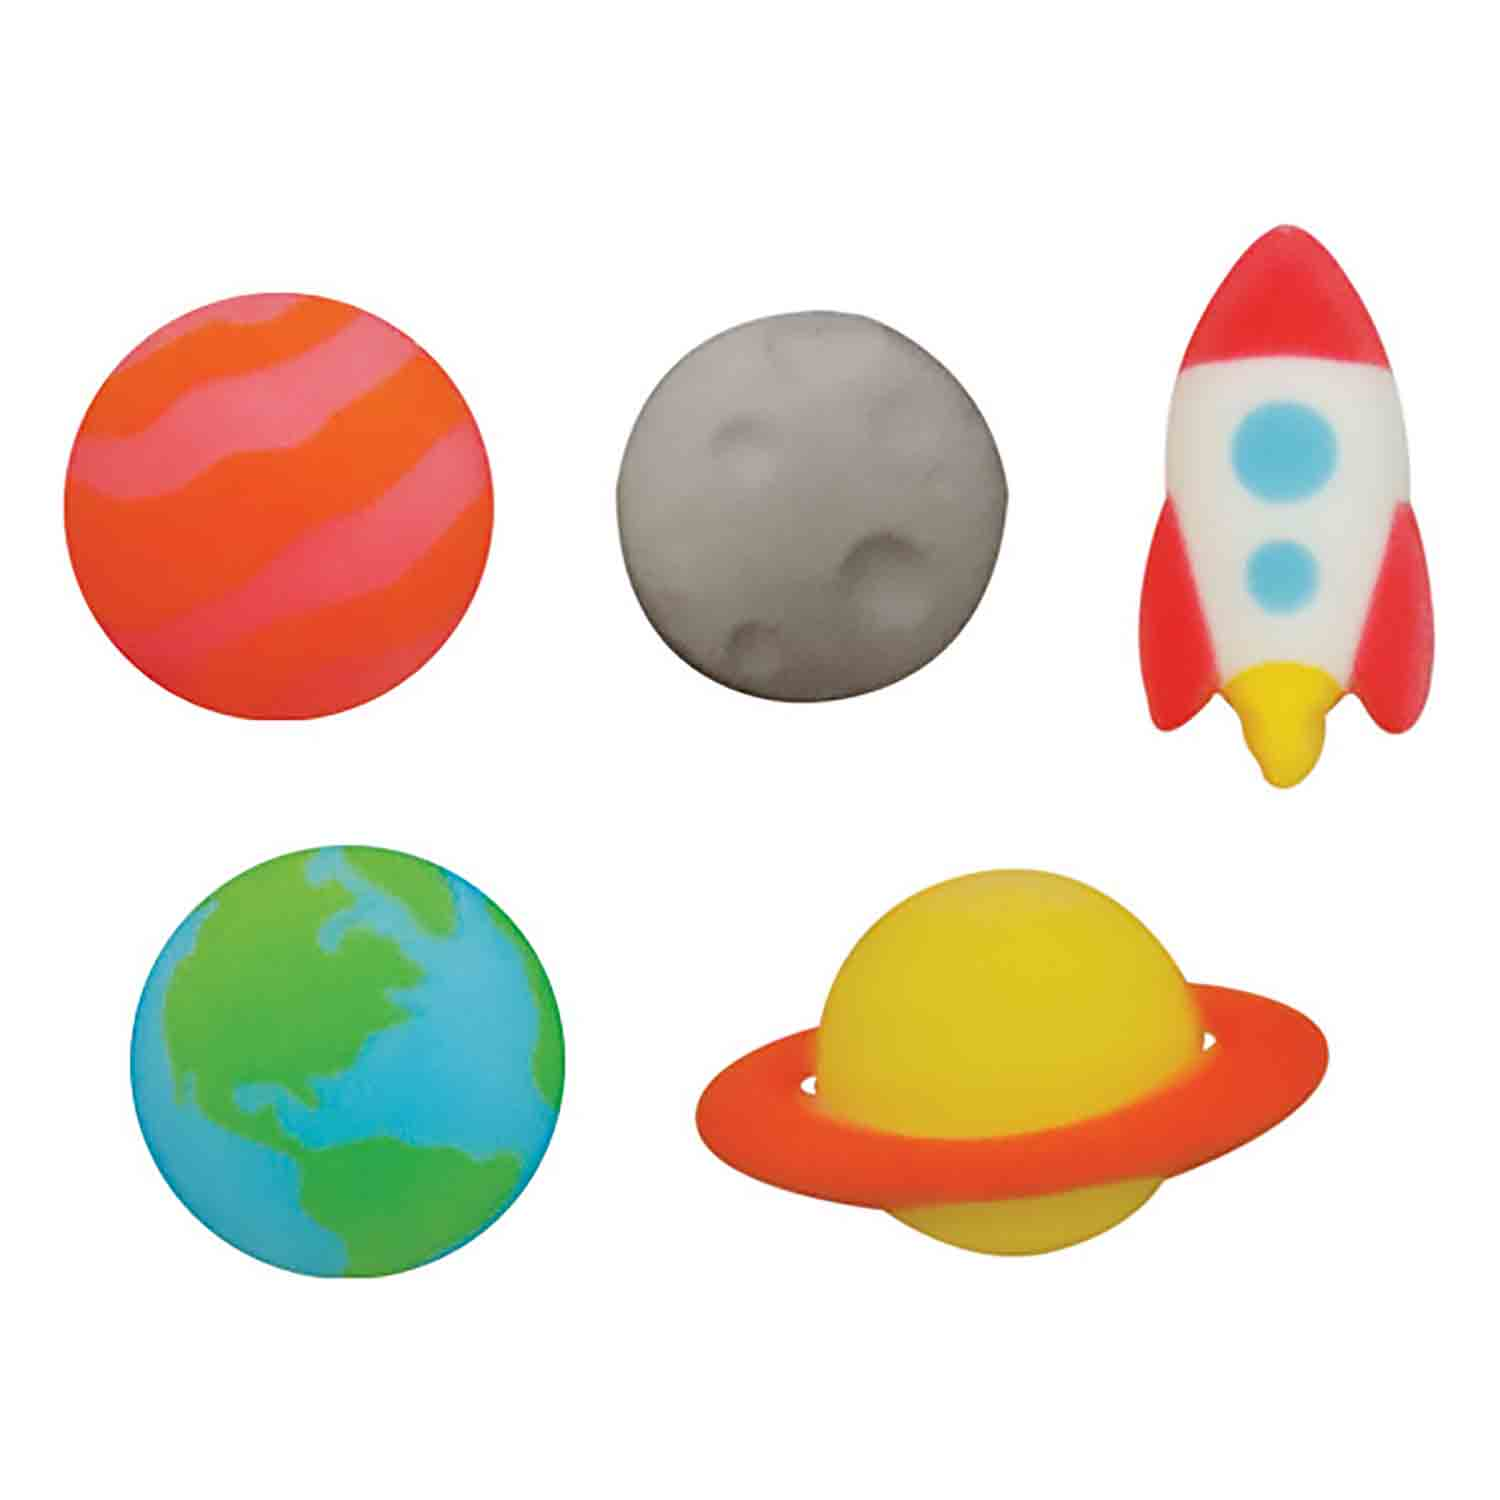 Dec-Ons® Molded Sugar - Outer Space Assortment